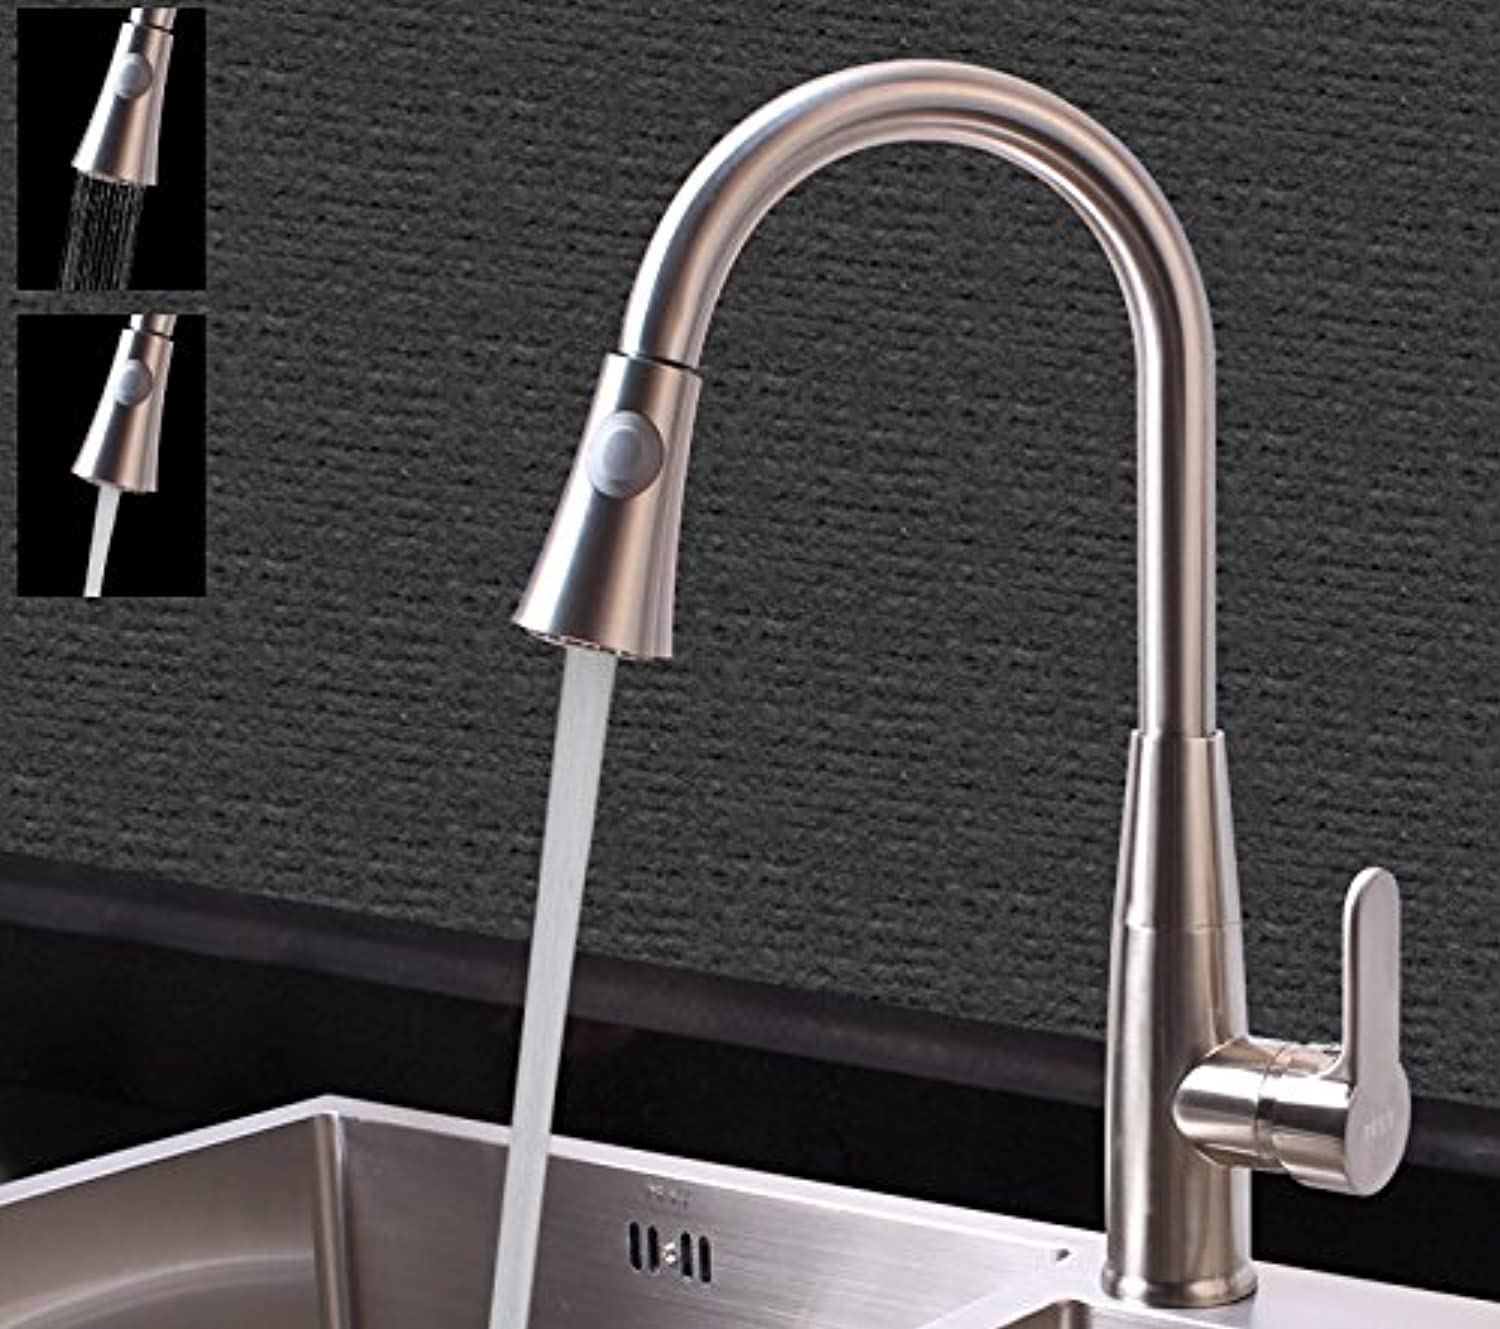 Bijjaladeva Antique Kitchen Sink Mixer Tap The Kitchen Cold Water Faucet 000 to redate The Dish Washing Basin Mixer Retractable Pull Sink Mixer 2